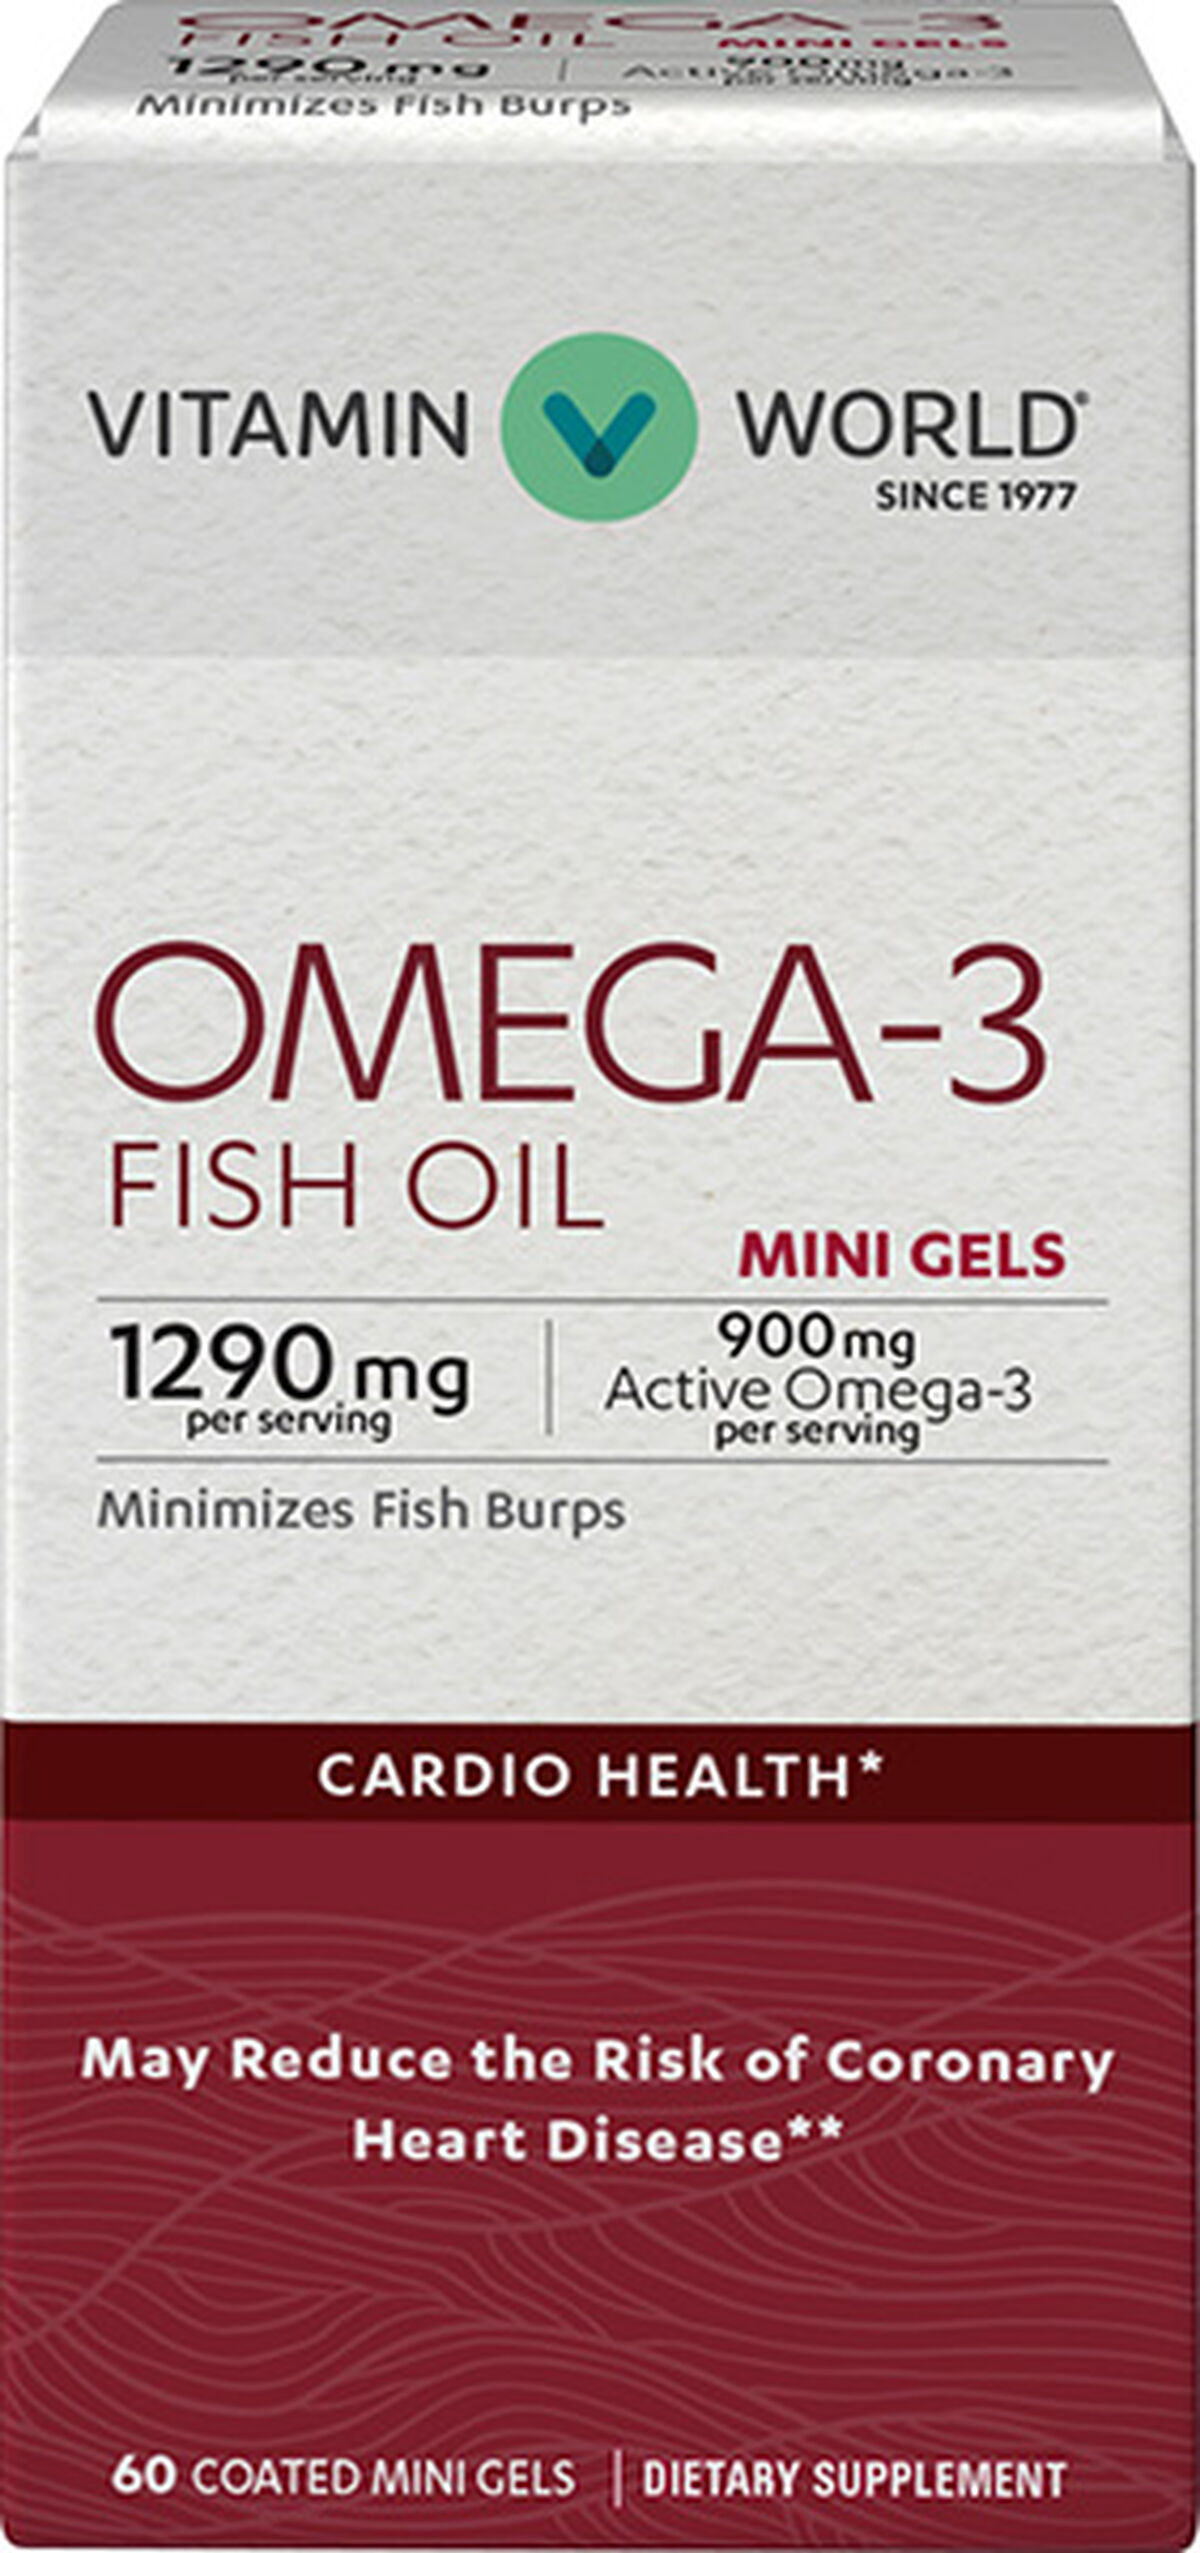 Omega-3 Fish Oil Premium Coated Mini Gels 900mg at Vitamin World | Tuggl